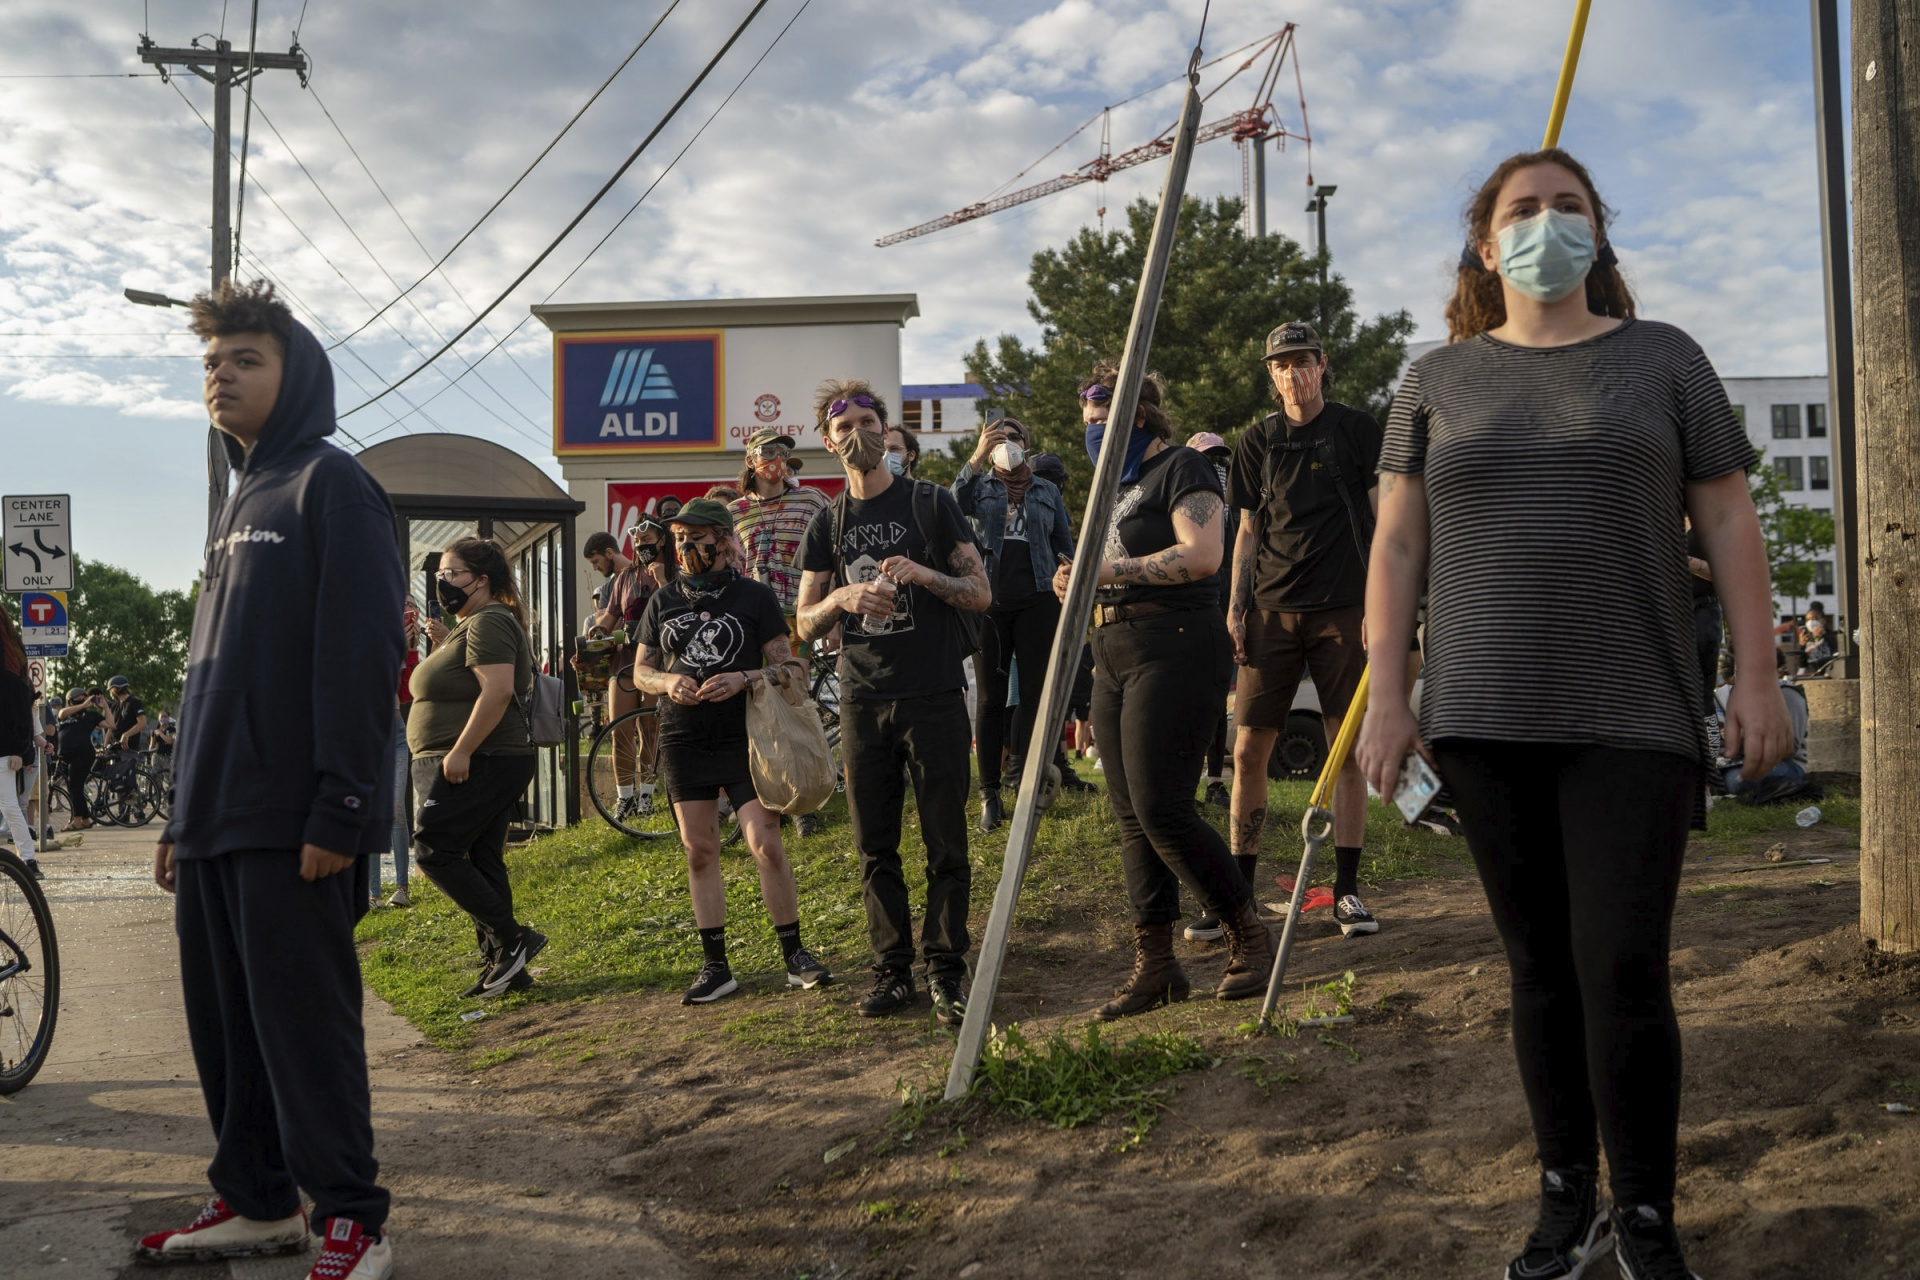 Protesters watch from a distance as police and other protesters face off during protests